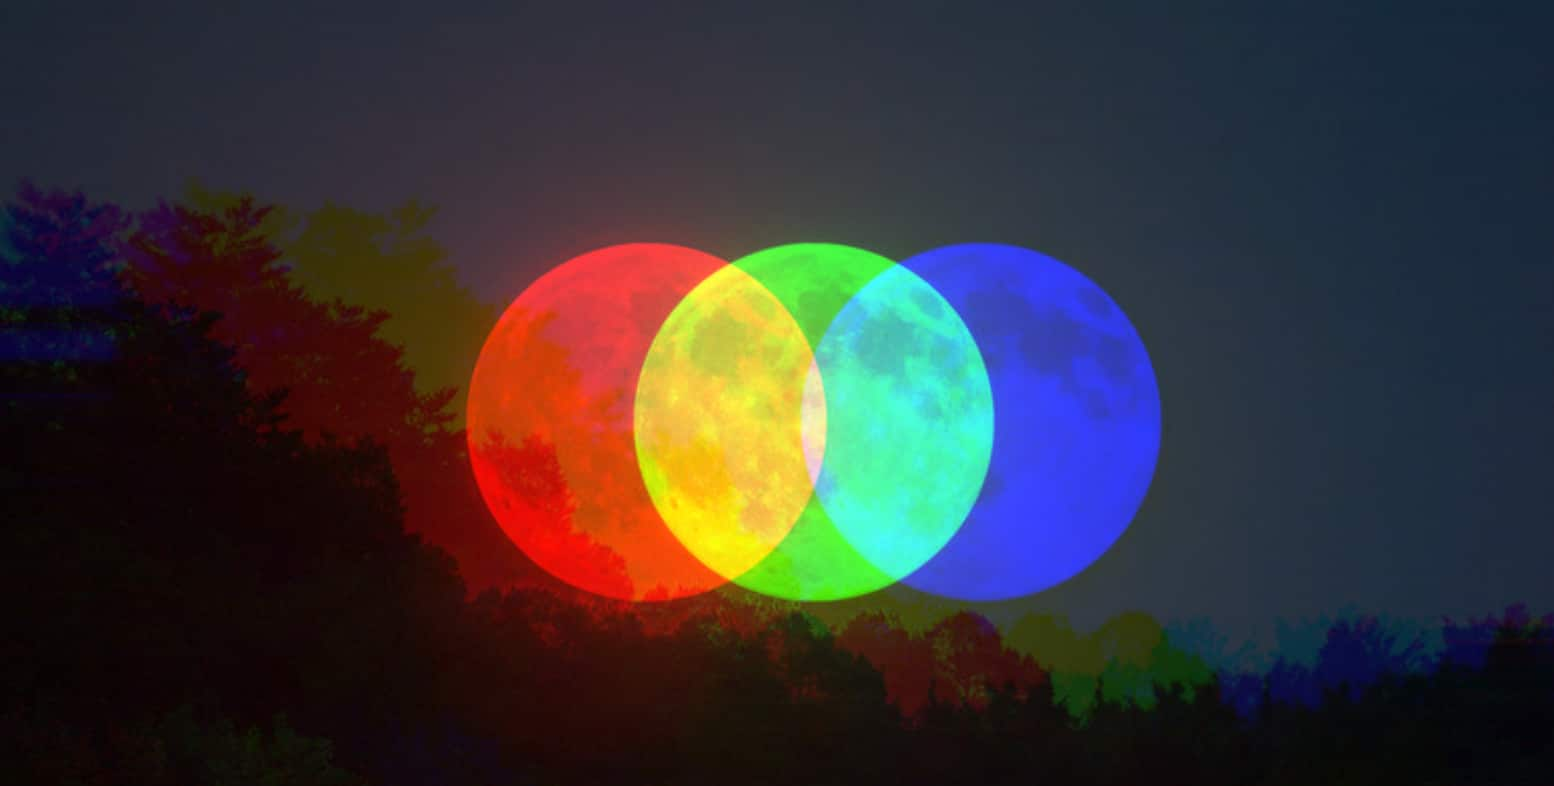 true colors of the moon